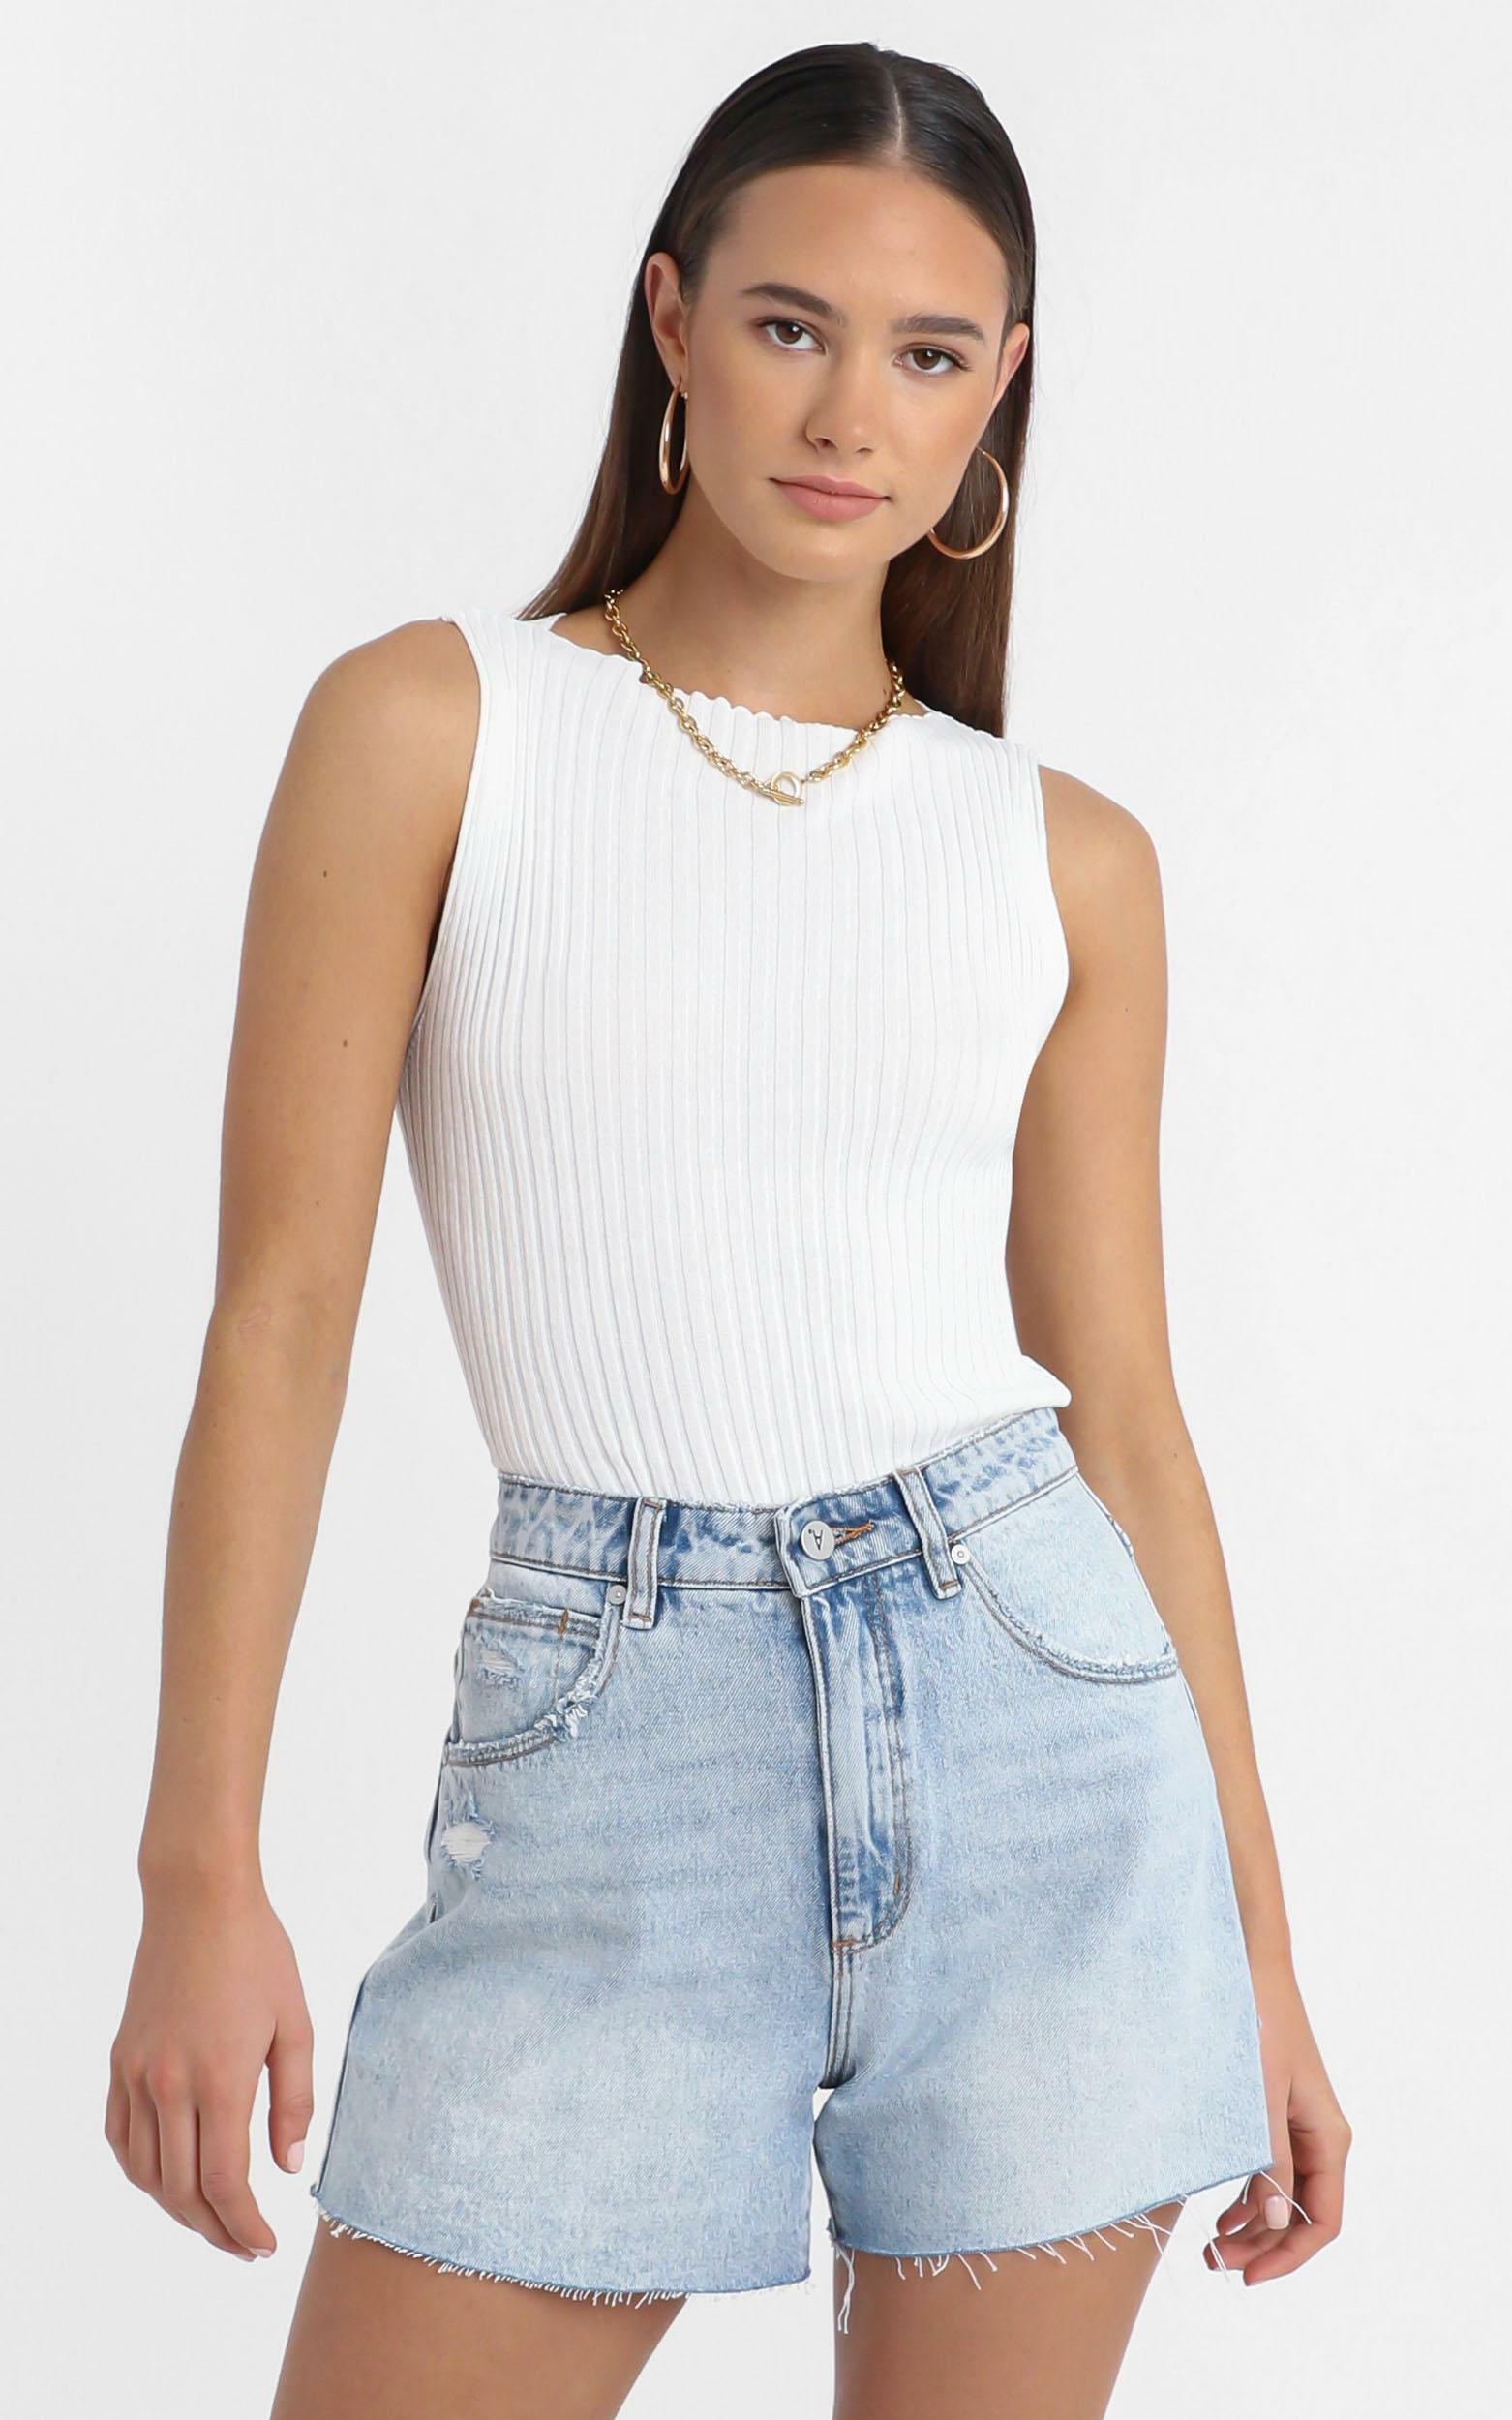 Laylah Knit top in White - 14 (XL), White, hi-res image number null